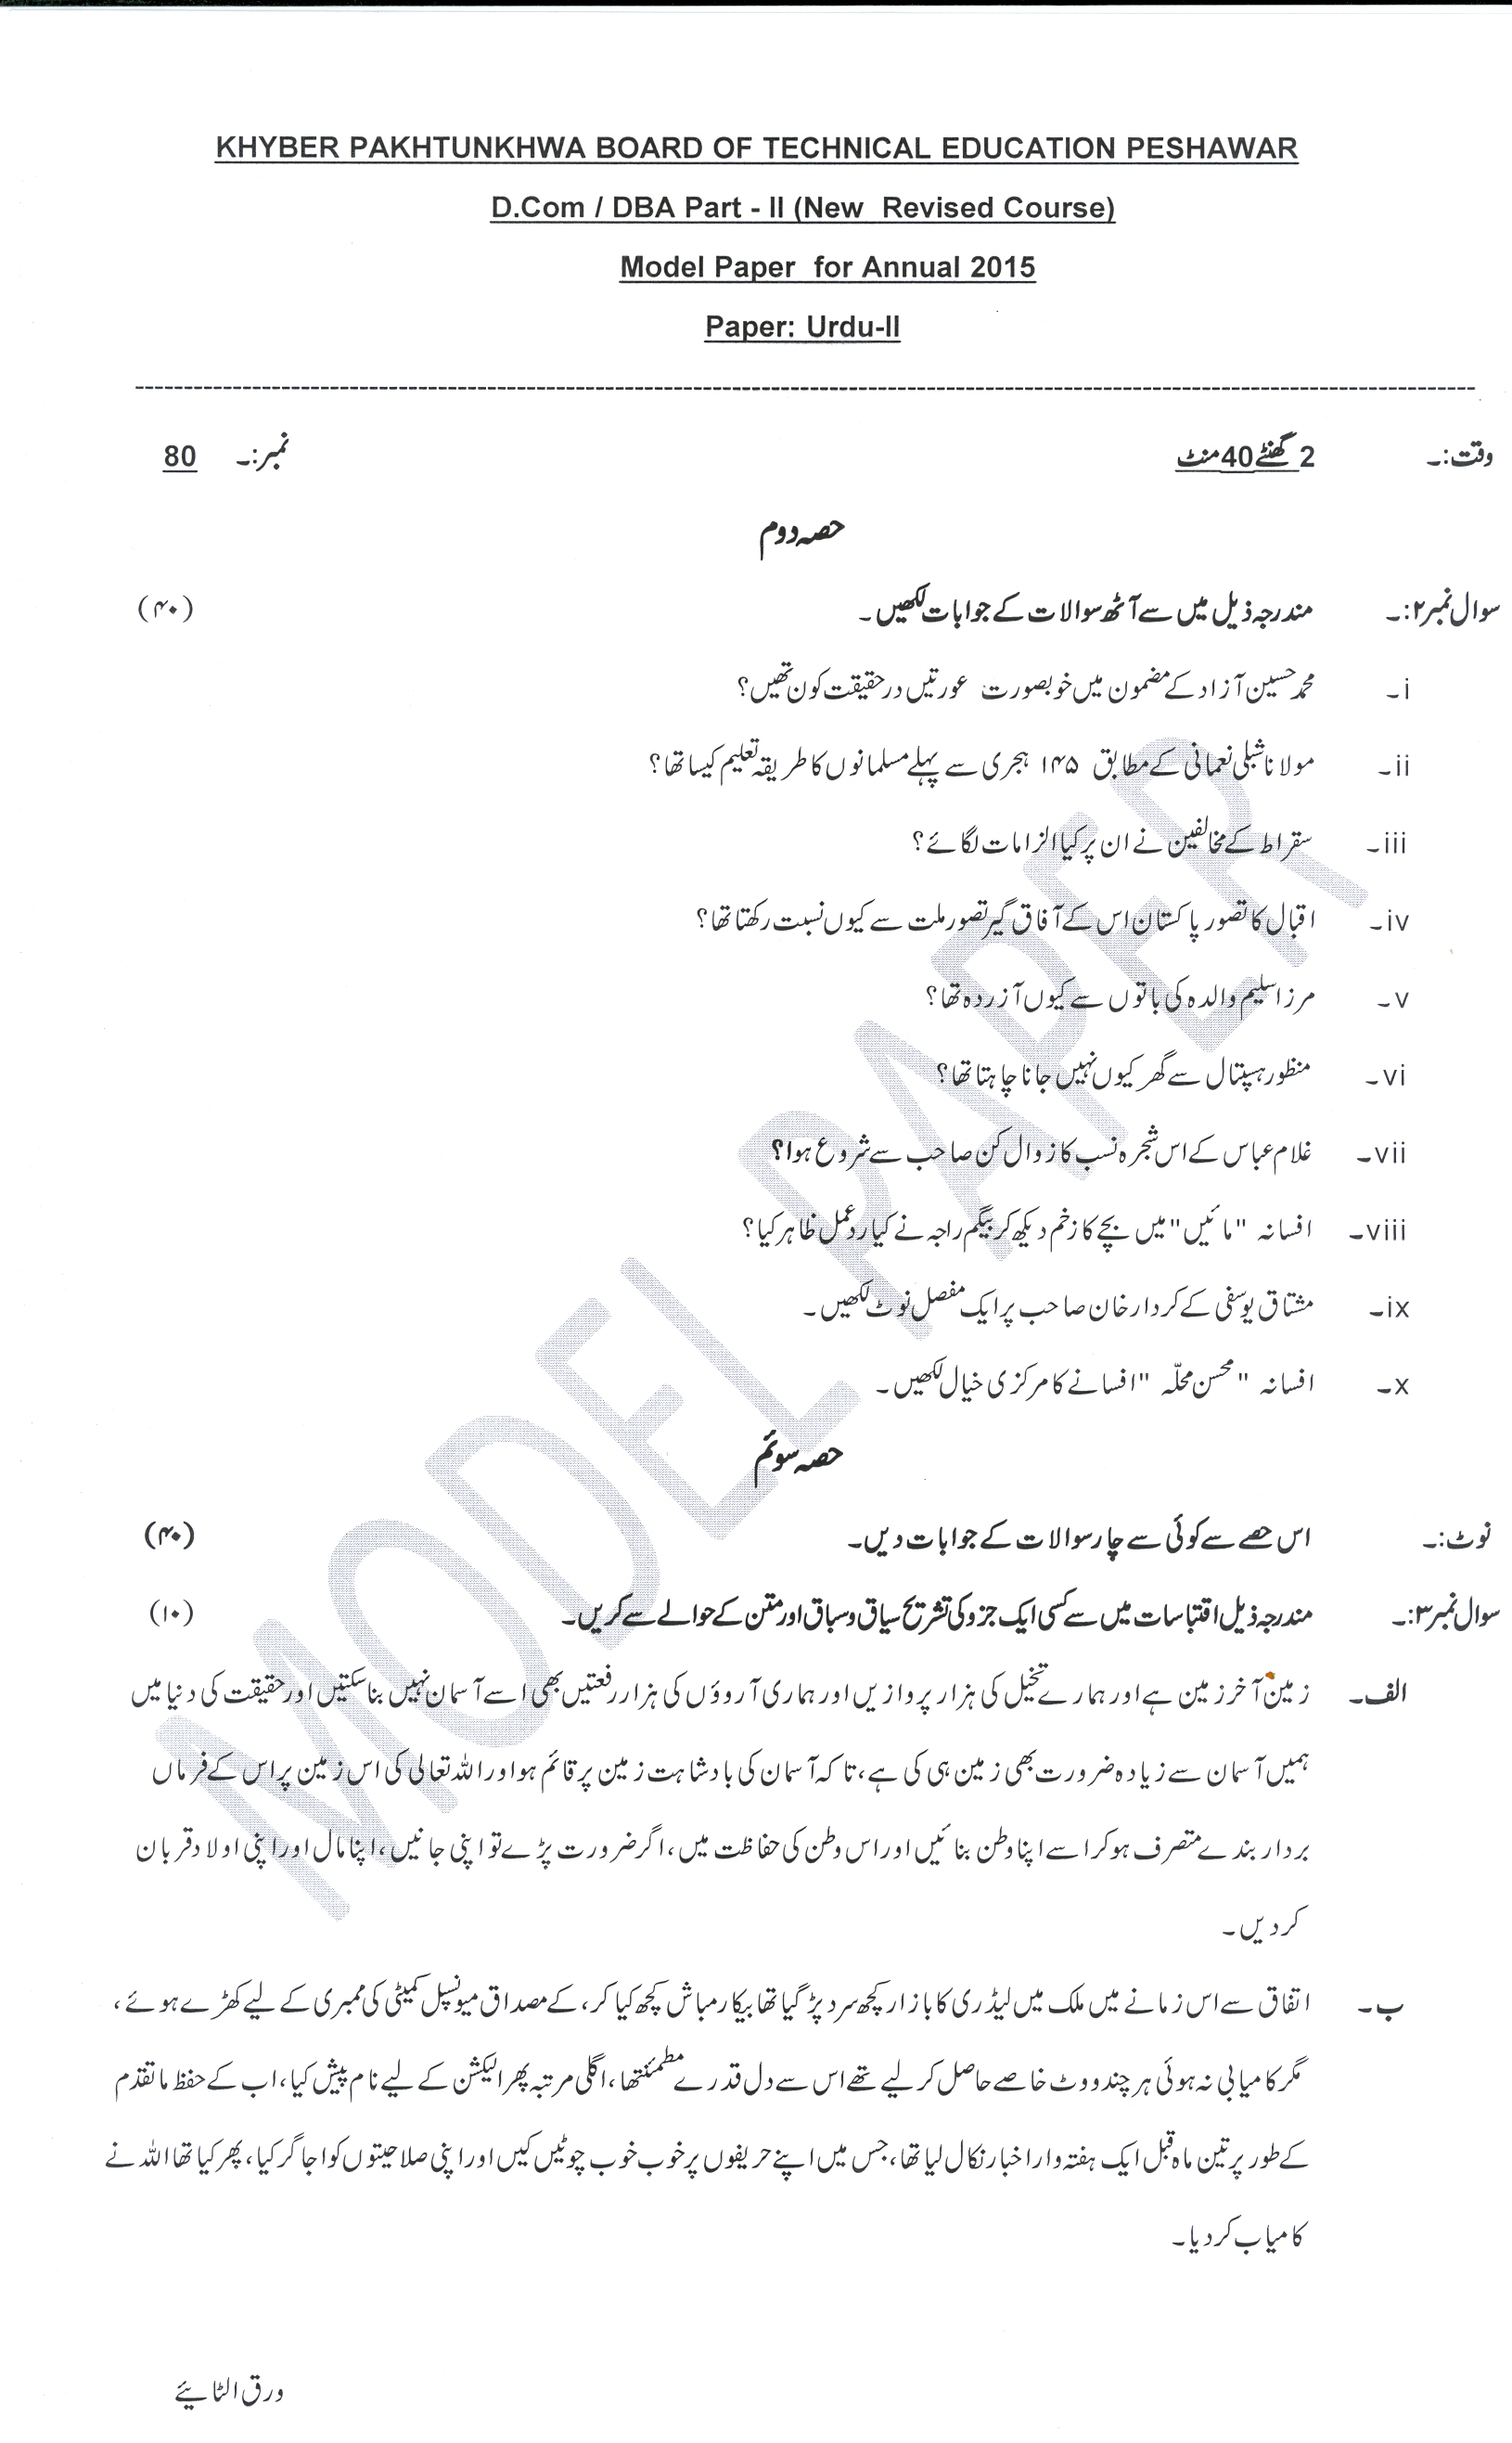 KPK Board of Technical Education Peshawar Model Papers 2019